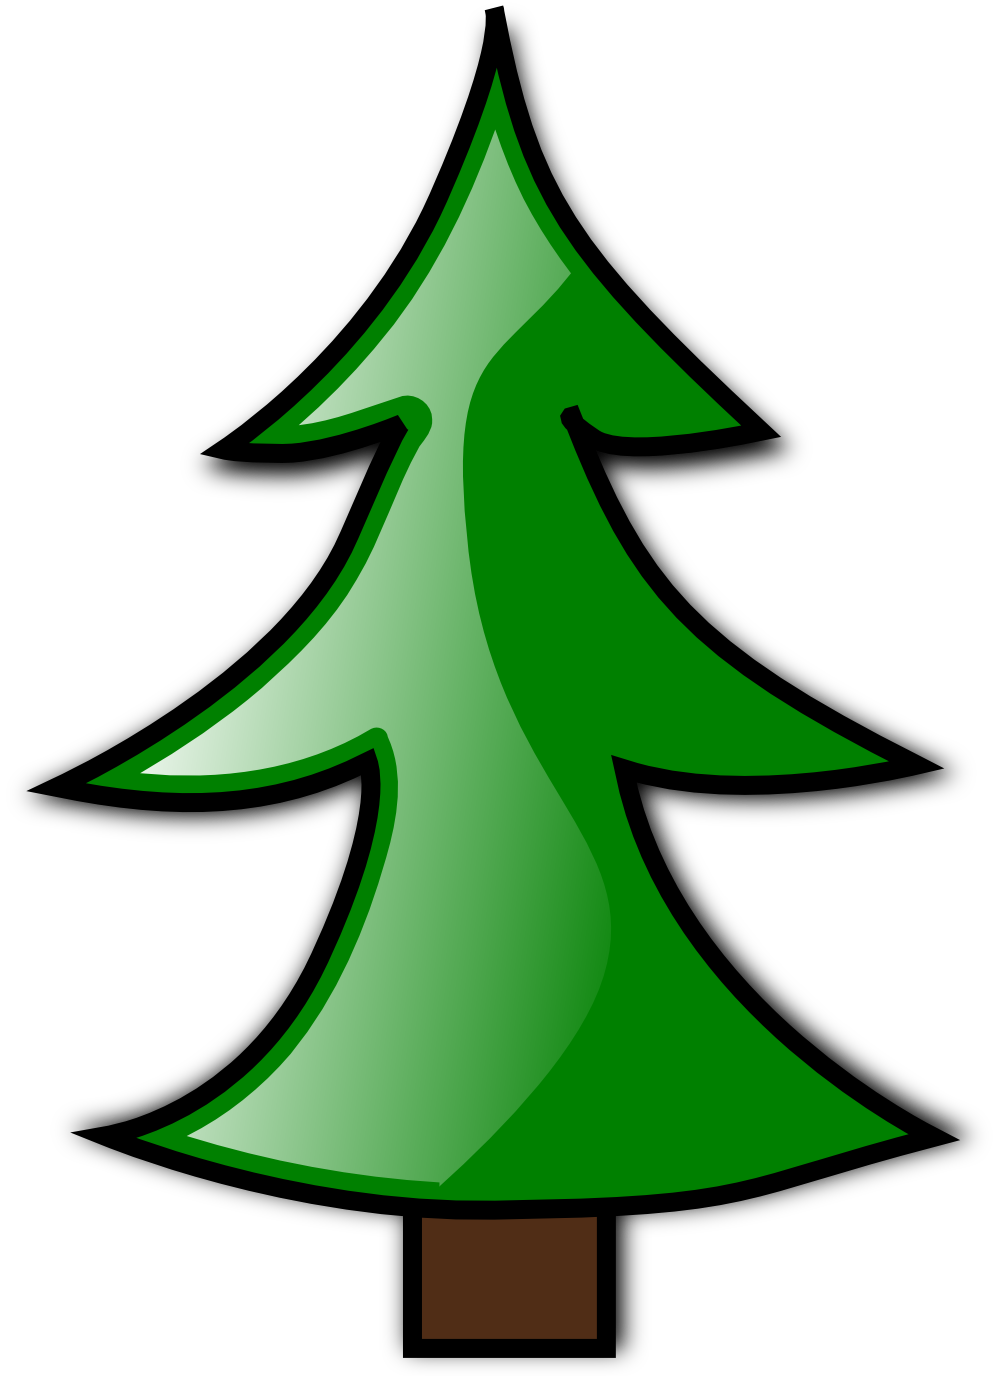 Christmas Tree Clip Art For Free | Clipart Panda - Free ...